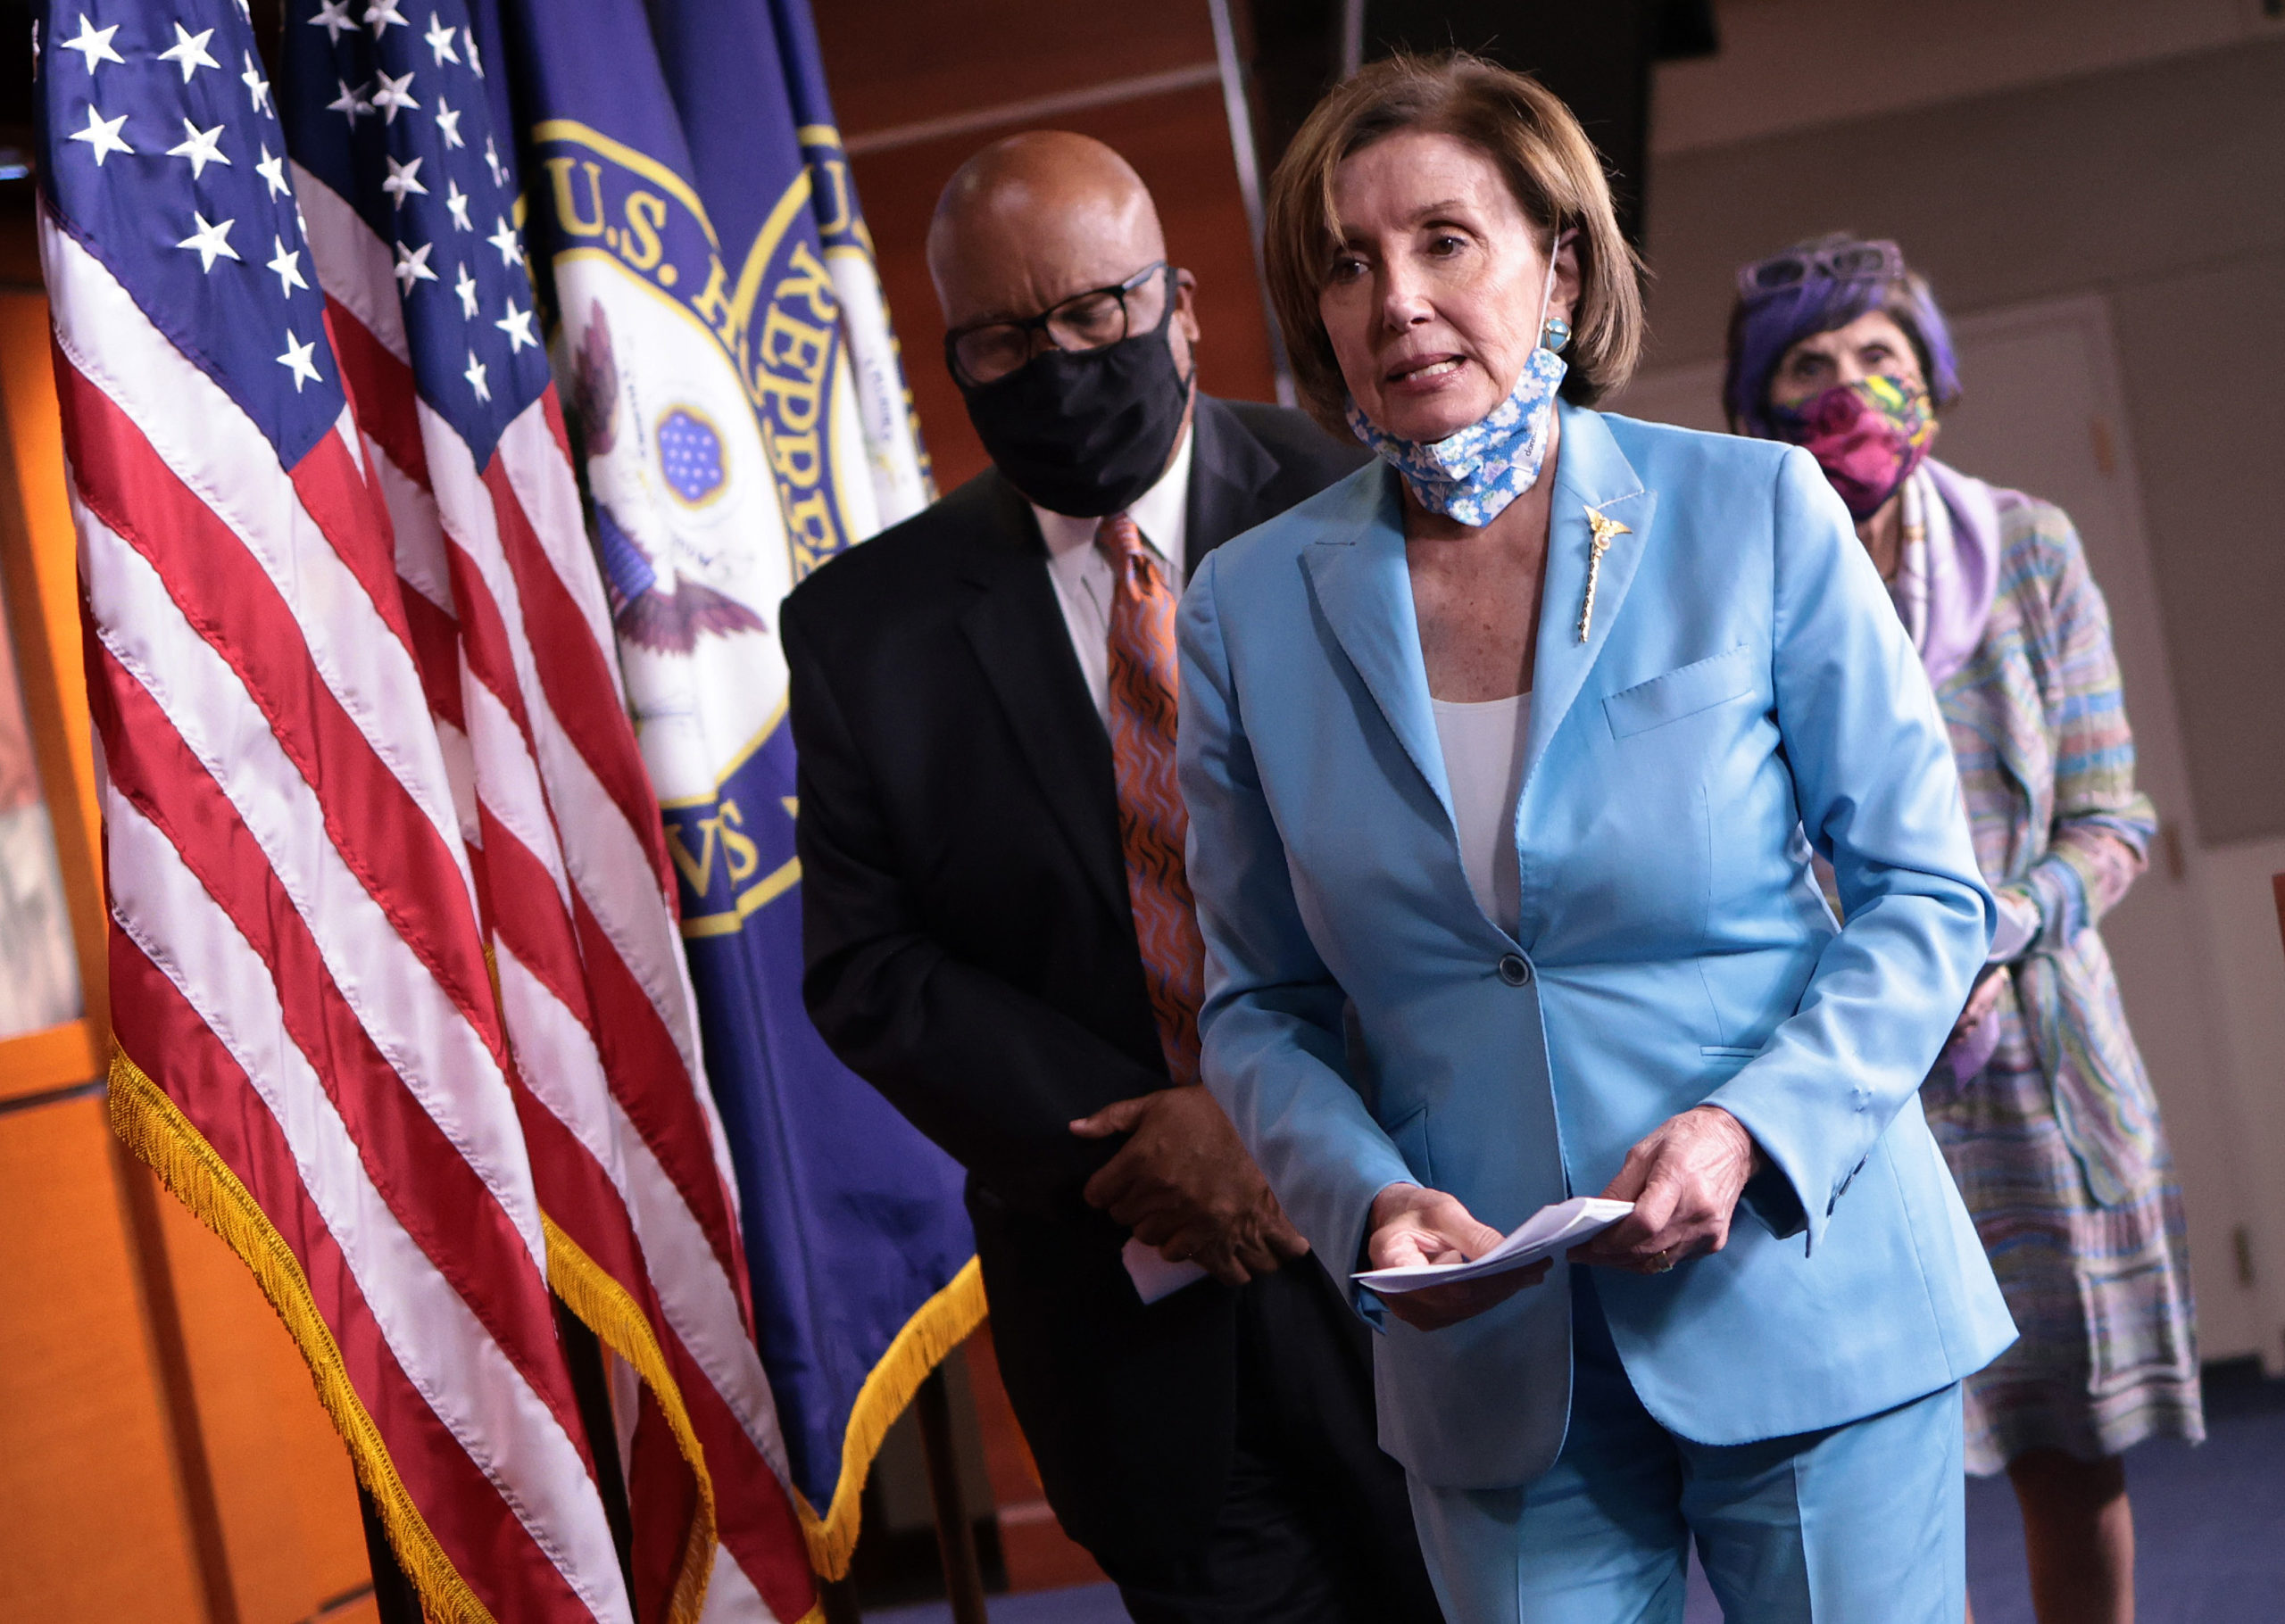 U.S. Speaker of the House Nancy Pelosi, trailed by Rep. Bennie Thompson and Rep. Rosa DeLauro, departs a press conference on the establishment of a commission to investigate the events surrounding January 6 at the U.S. Capitol on May 19, 2021 in Washington, DC. (Photo by Win McNamee/Getty Images)